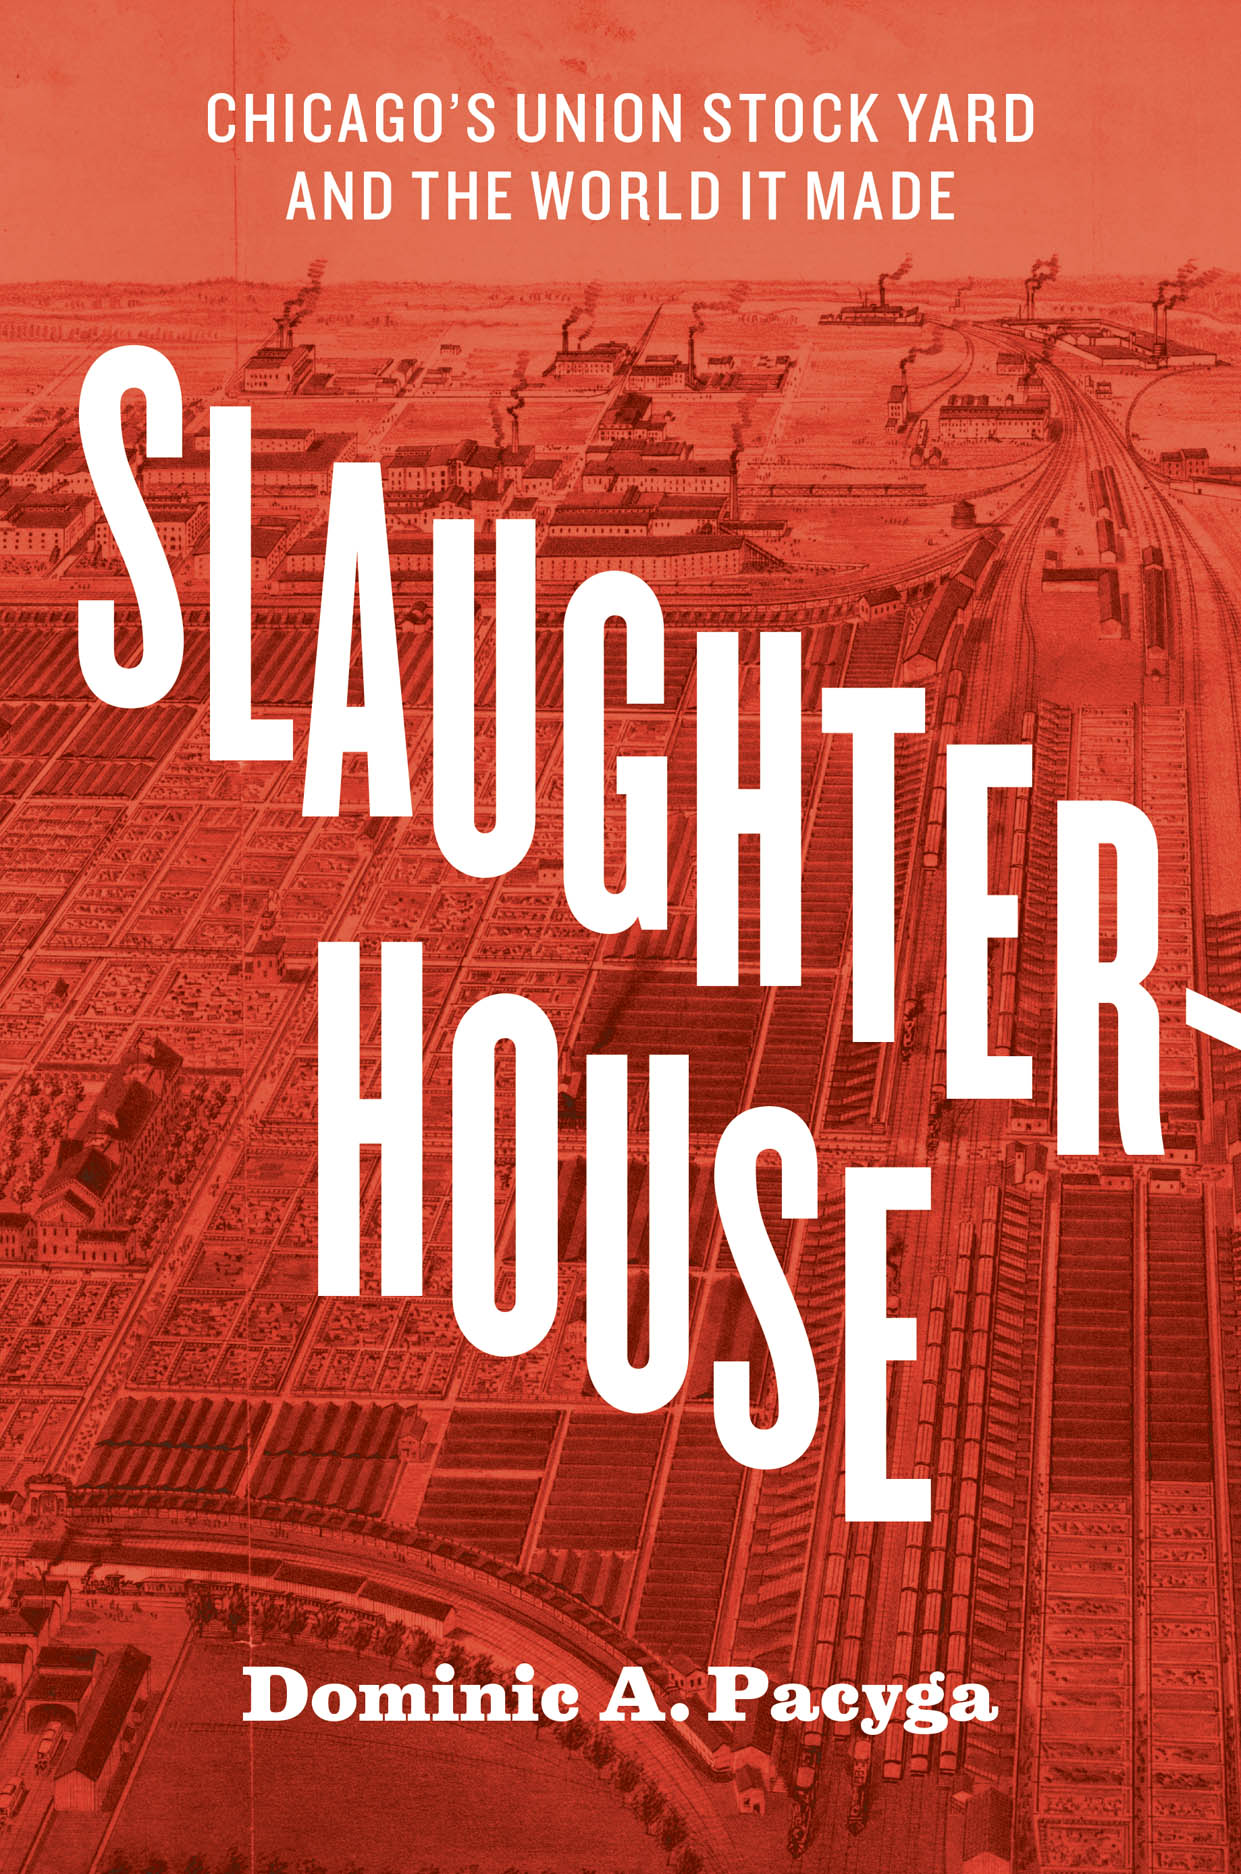 Slaughterhouse: Chicago's Union Stock Yard and the World It Made